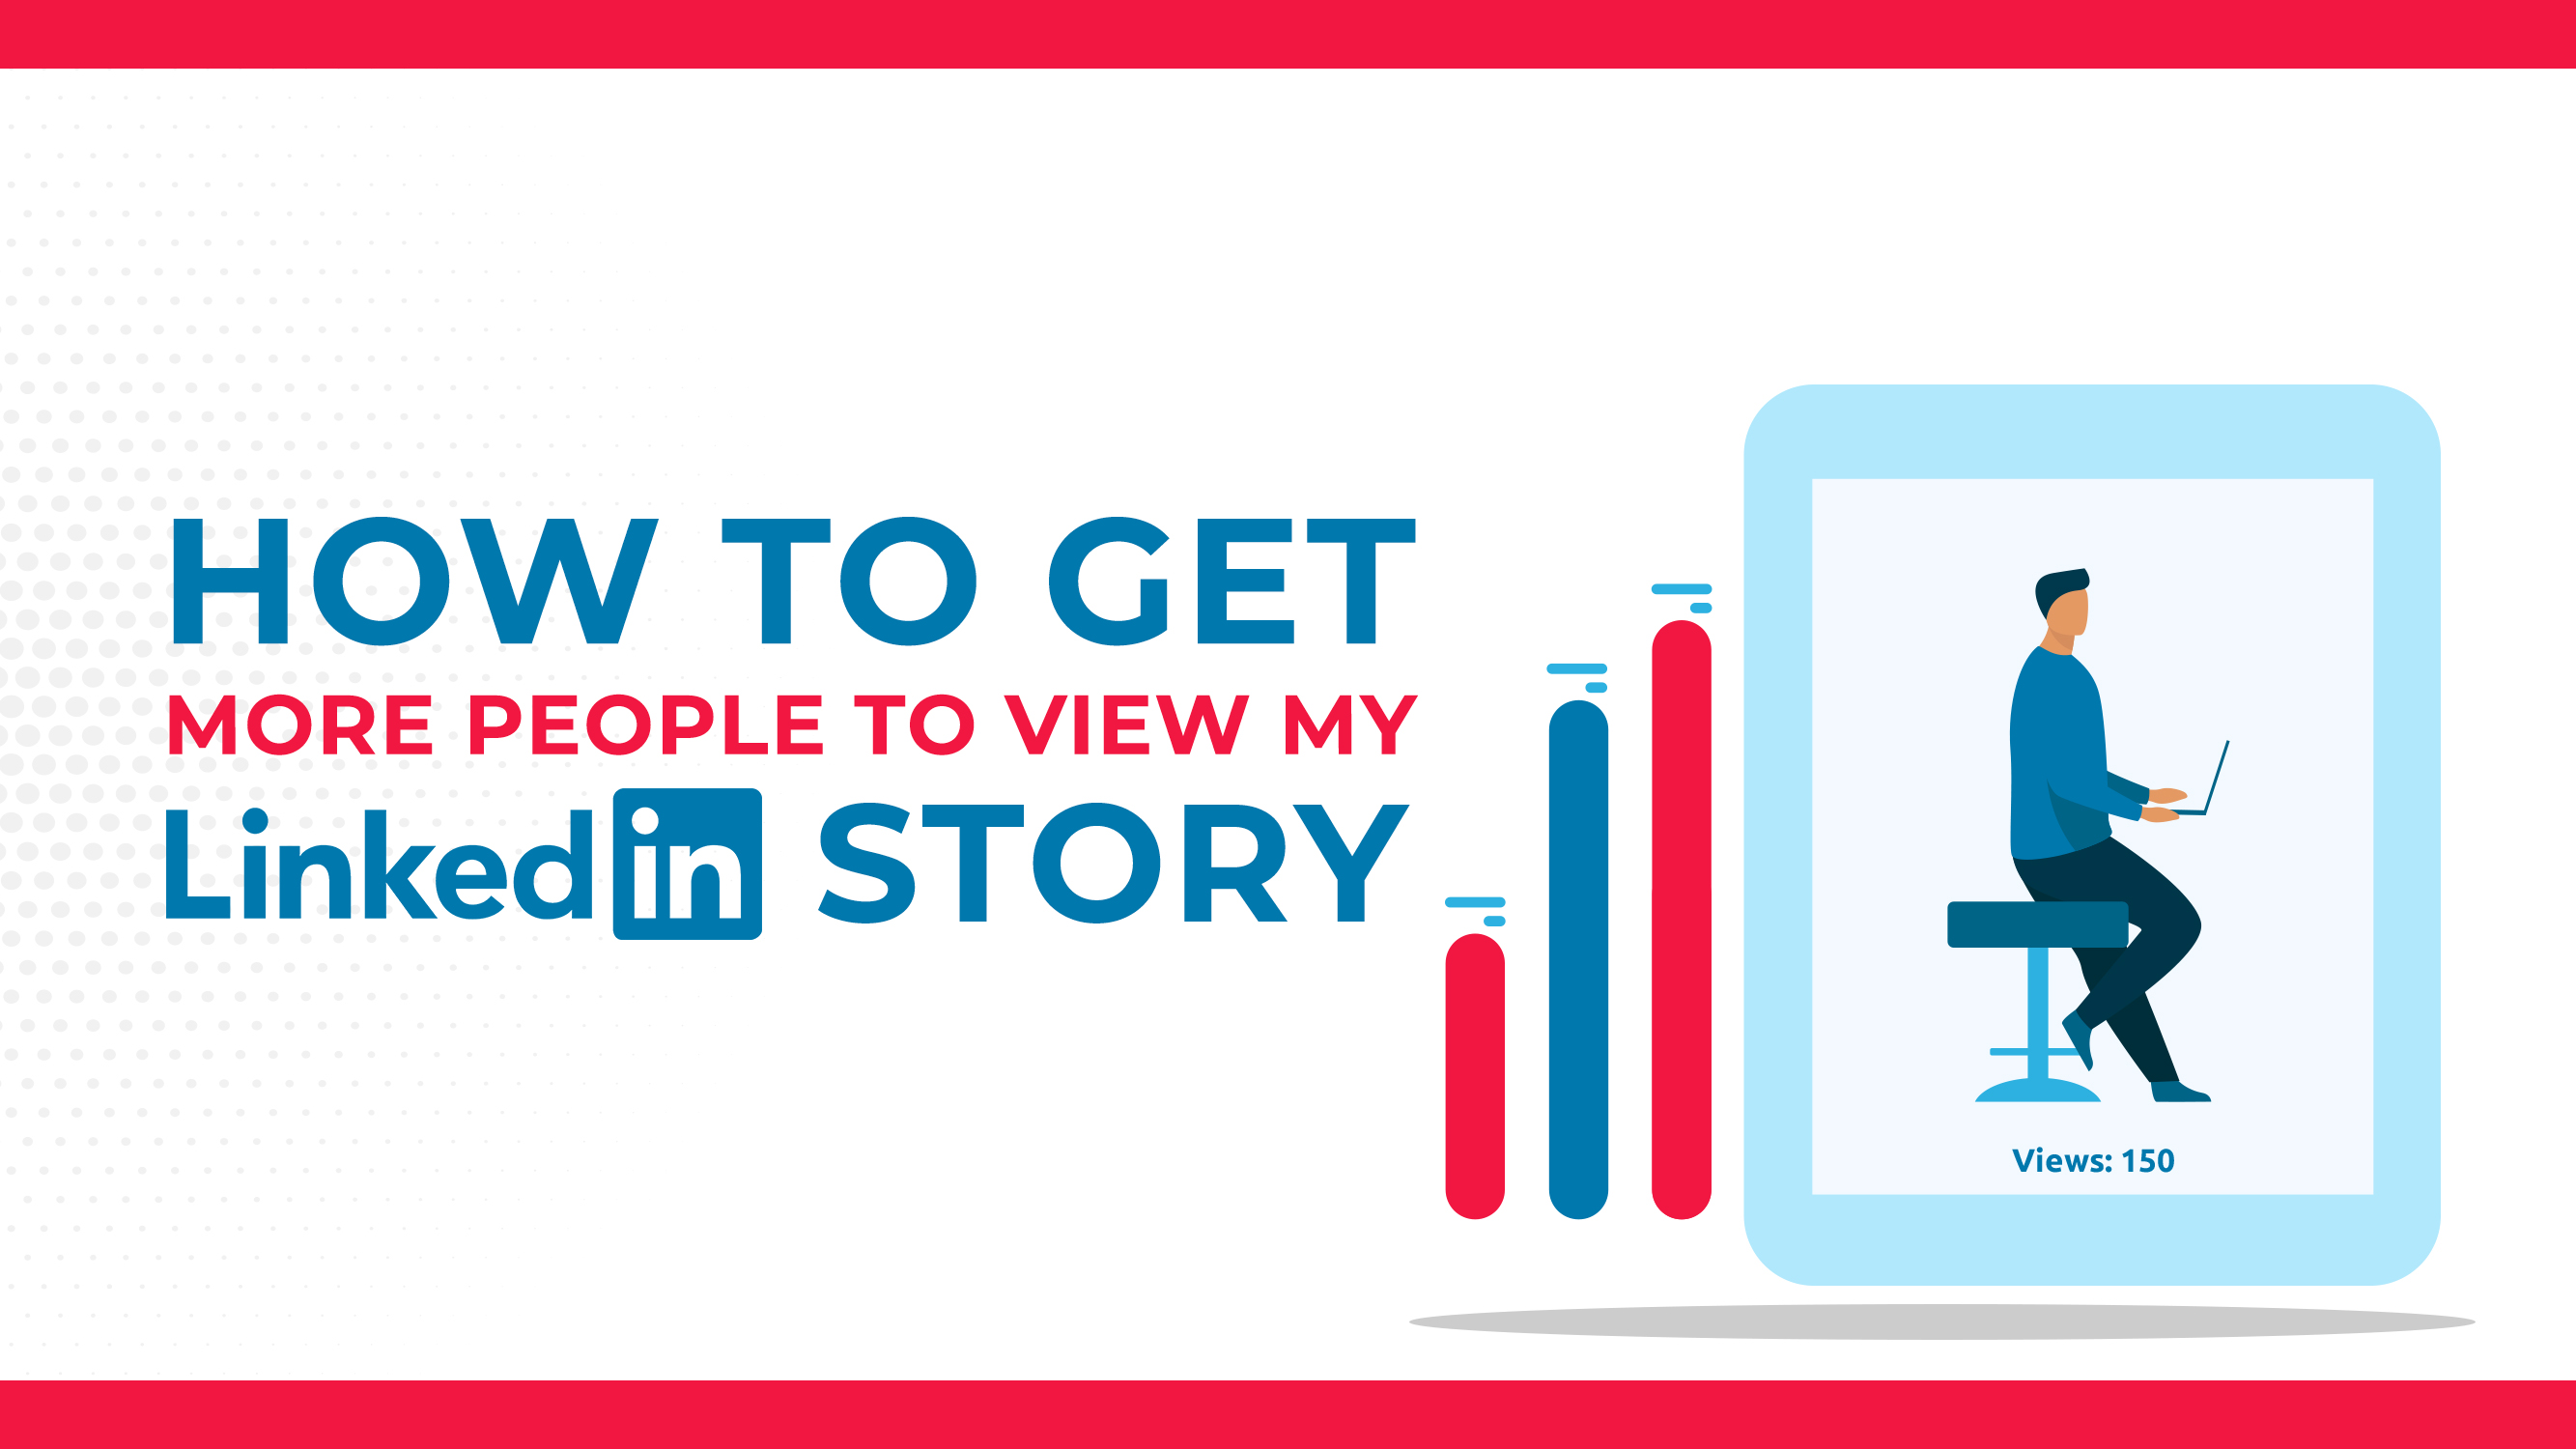 How To Get More People To View My LinkedIn Story